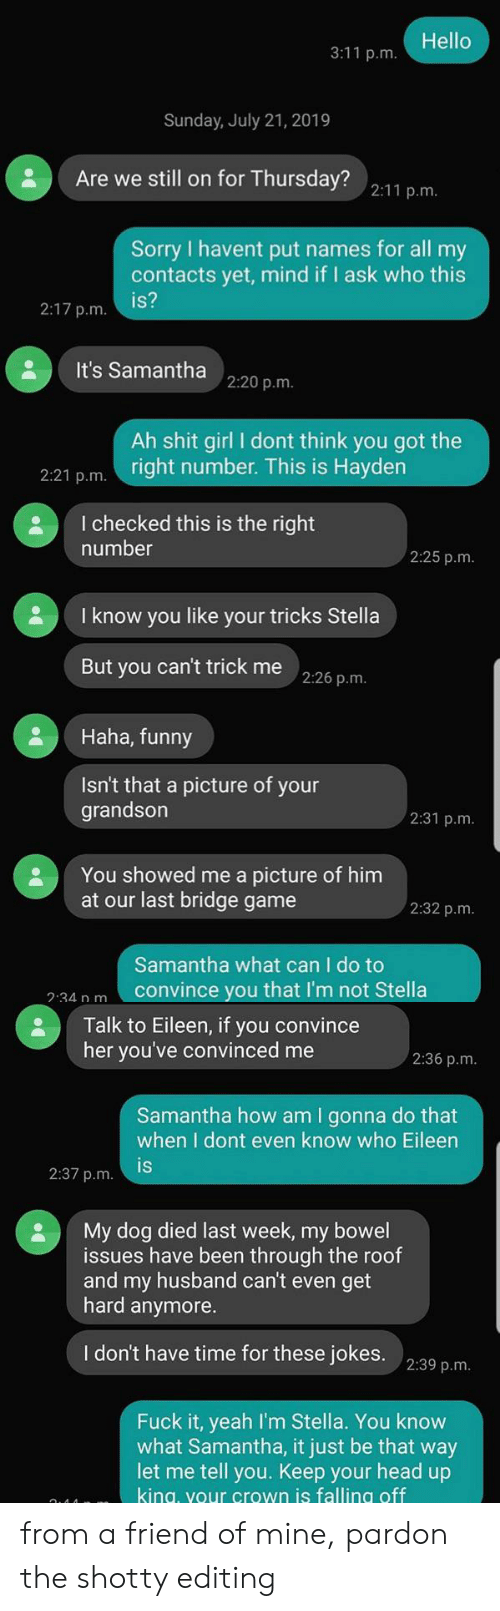 Funny, Head, and Hello: Hello  3:11 p.m.  Sunday, July 21, 2019  Are we still on for Thursday? 2:11 p.m.  Sorry I havent put names for all my  contacts yet, mind if I ask who this  is?  2:17 p.m.  It's Samanthna 2:20 p.m.  Ah shit girl I dont think you got the  right number. This is Hayden  2:21 p.m  I checked this is the right  number  2:25 p.m.  I know you like your tricks Stella  But you can't trick me 2:26 p.m.  Haha, funny  Isn't that a picture of your  grandson  2:31 p.m.  You showed me a picture of him  at our last bridge game  2:32 p.m.  Samantha what can I do to  convince you that I'm not Stella  2:34 n m  Talk to Eileen, if you convince  her you've convinced me  2:36 p.m.  Samantha how am I gonna do that  when I dont even know who Eileen  is  2:37 p.m.  My dog died last week, my bowel  issues have been through the roof  and my husband can't even  hard anymore.  get  I don't have time for these jokes.  2:39 p.m.  Fuck it, yeah I'm Stella. You know  what Samantha, it just be that way  let me tell you. Keep your head up  king, your crown is falling off from a friend of mine, pardon the shotty editing